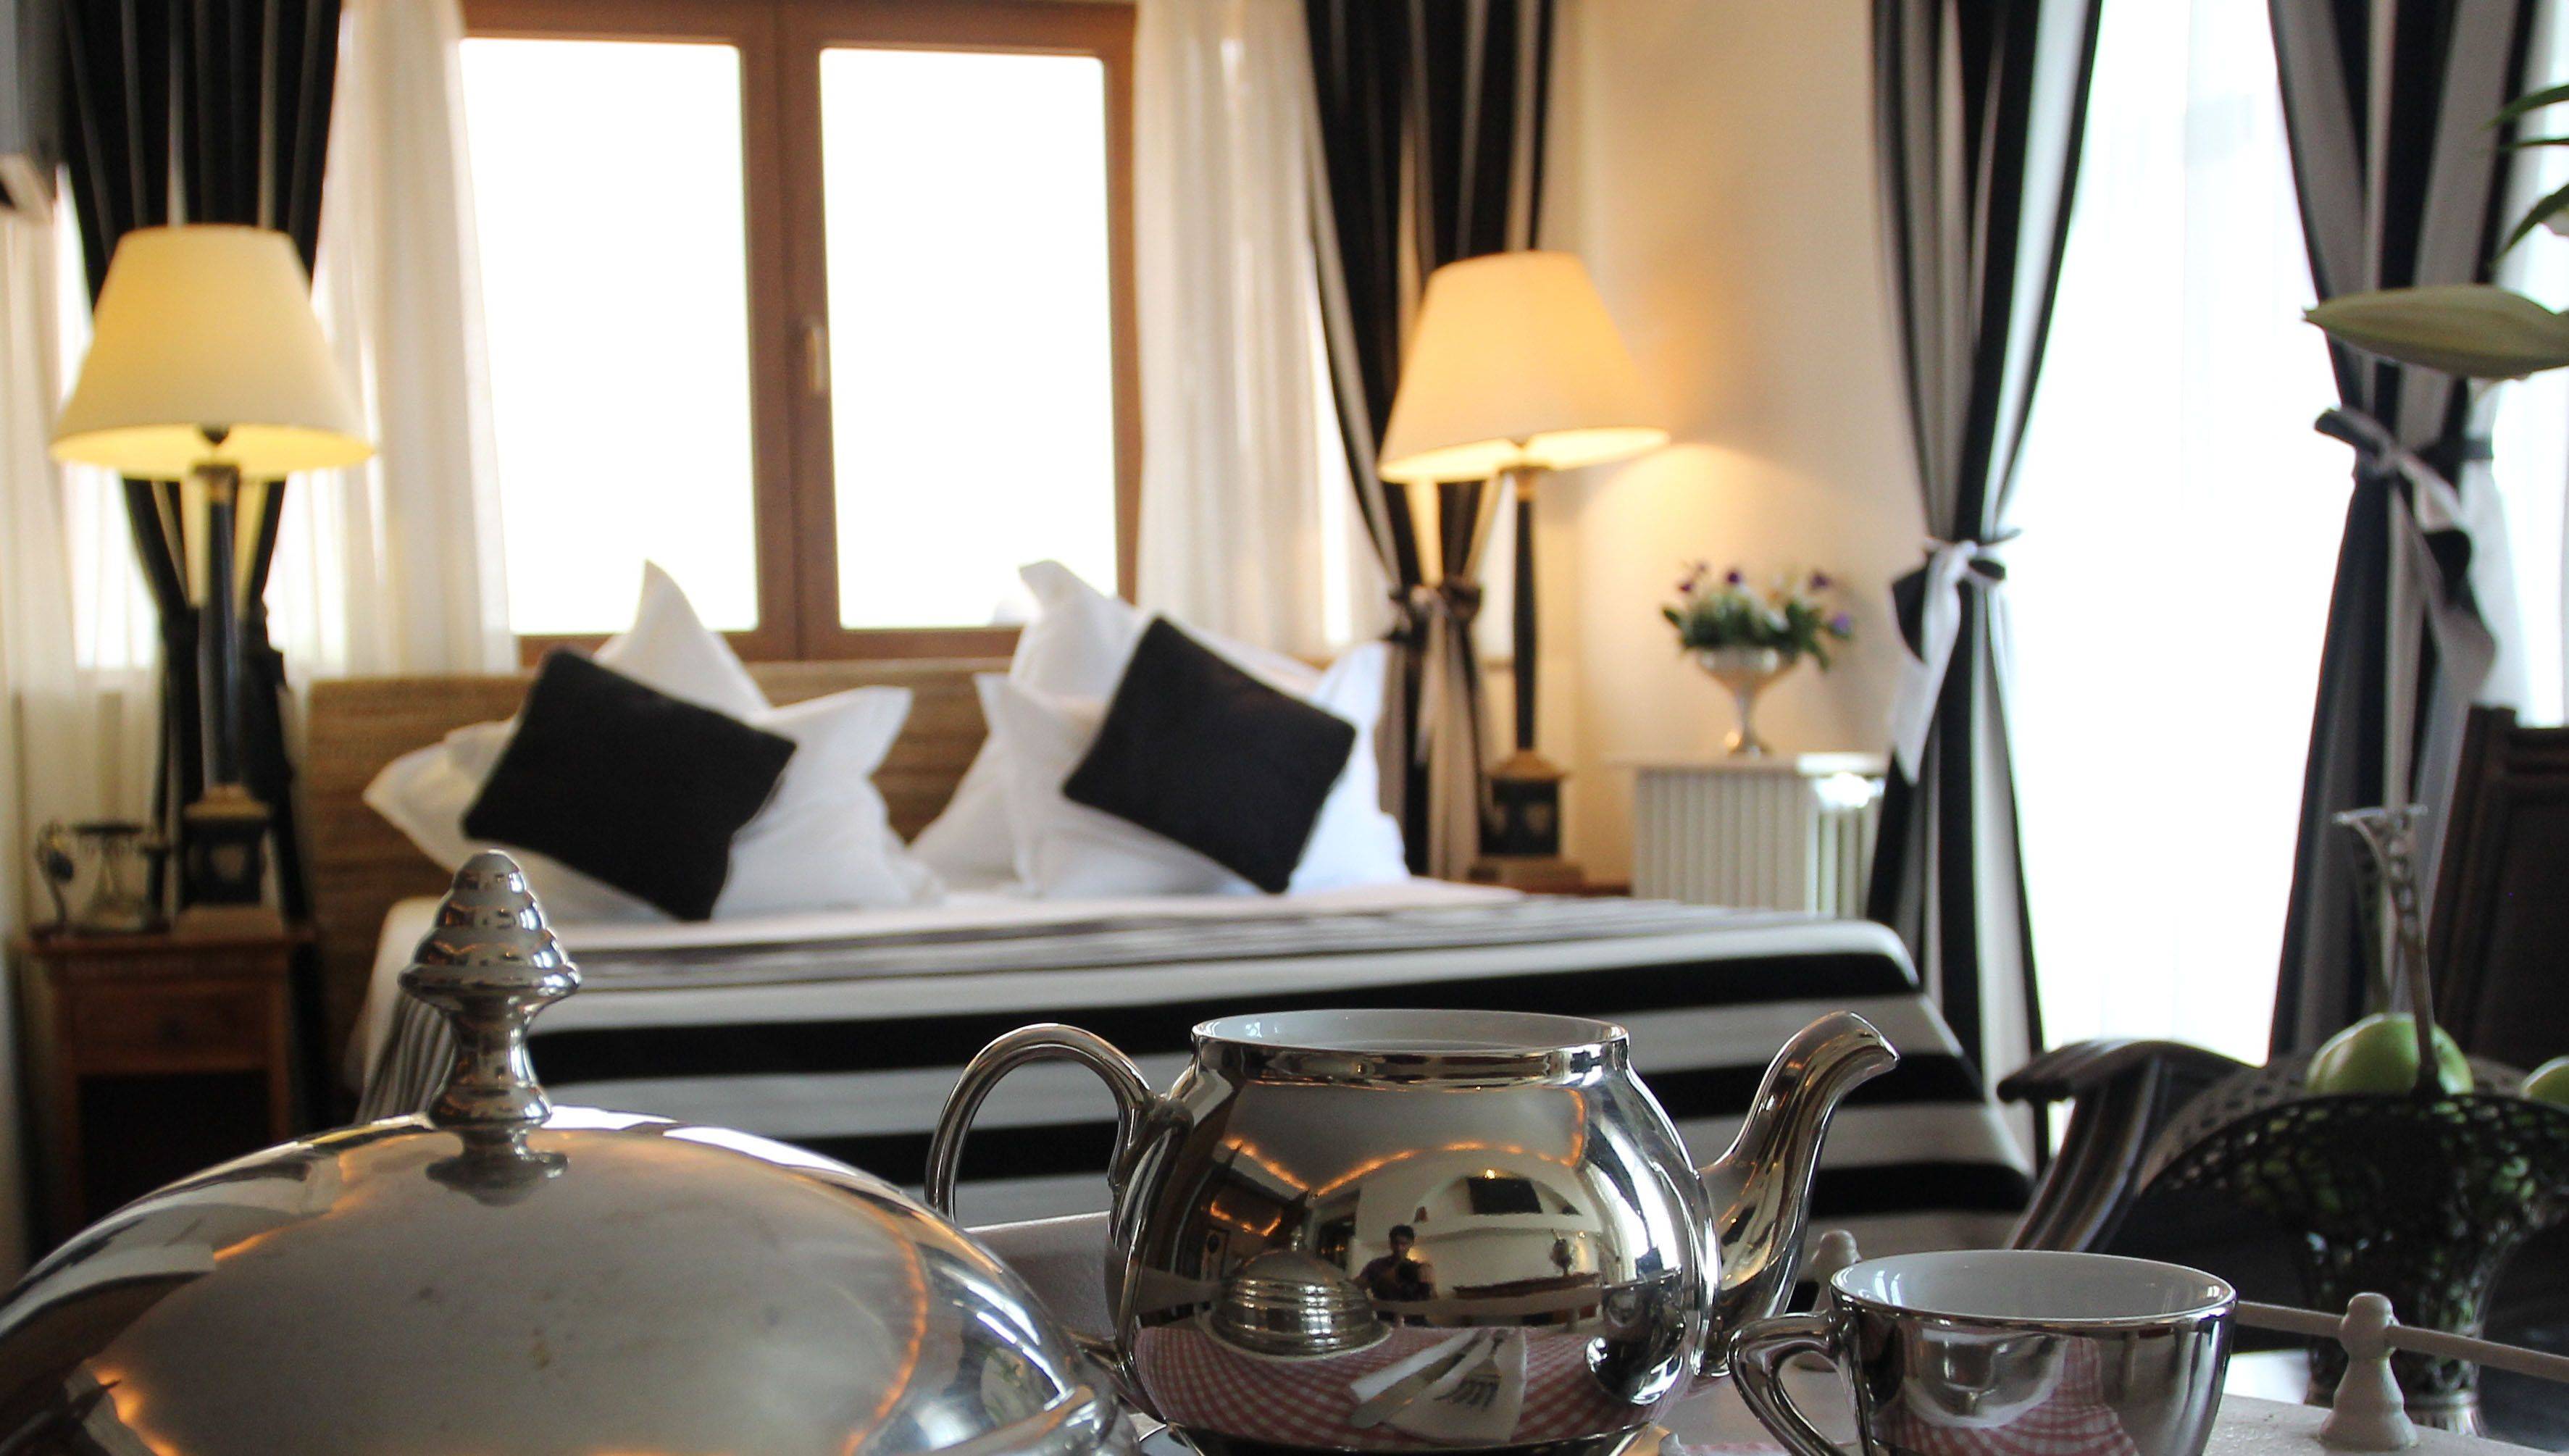 """Residence Domenii Plaza """"Business & Wellness"""" Bucharest accommodates its guests in exquisite and cozy hotel rooms. #residencehotels #hotelrooms"""